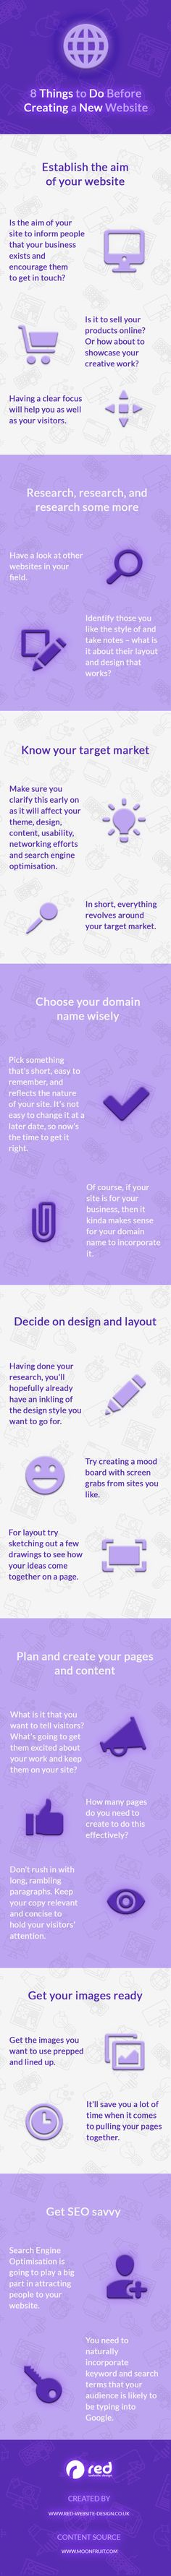 Pre-Web Design Checklist: 8 Things to Do Before Creating a New Website [Infographic] News Web Design, Web Design Projects, Small Business Web Design, Leaflet Distribution, Internet Marketing Company, Create Yourself, Digital Marketing, Things To Do, About Me Blog